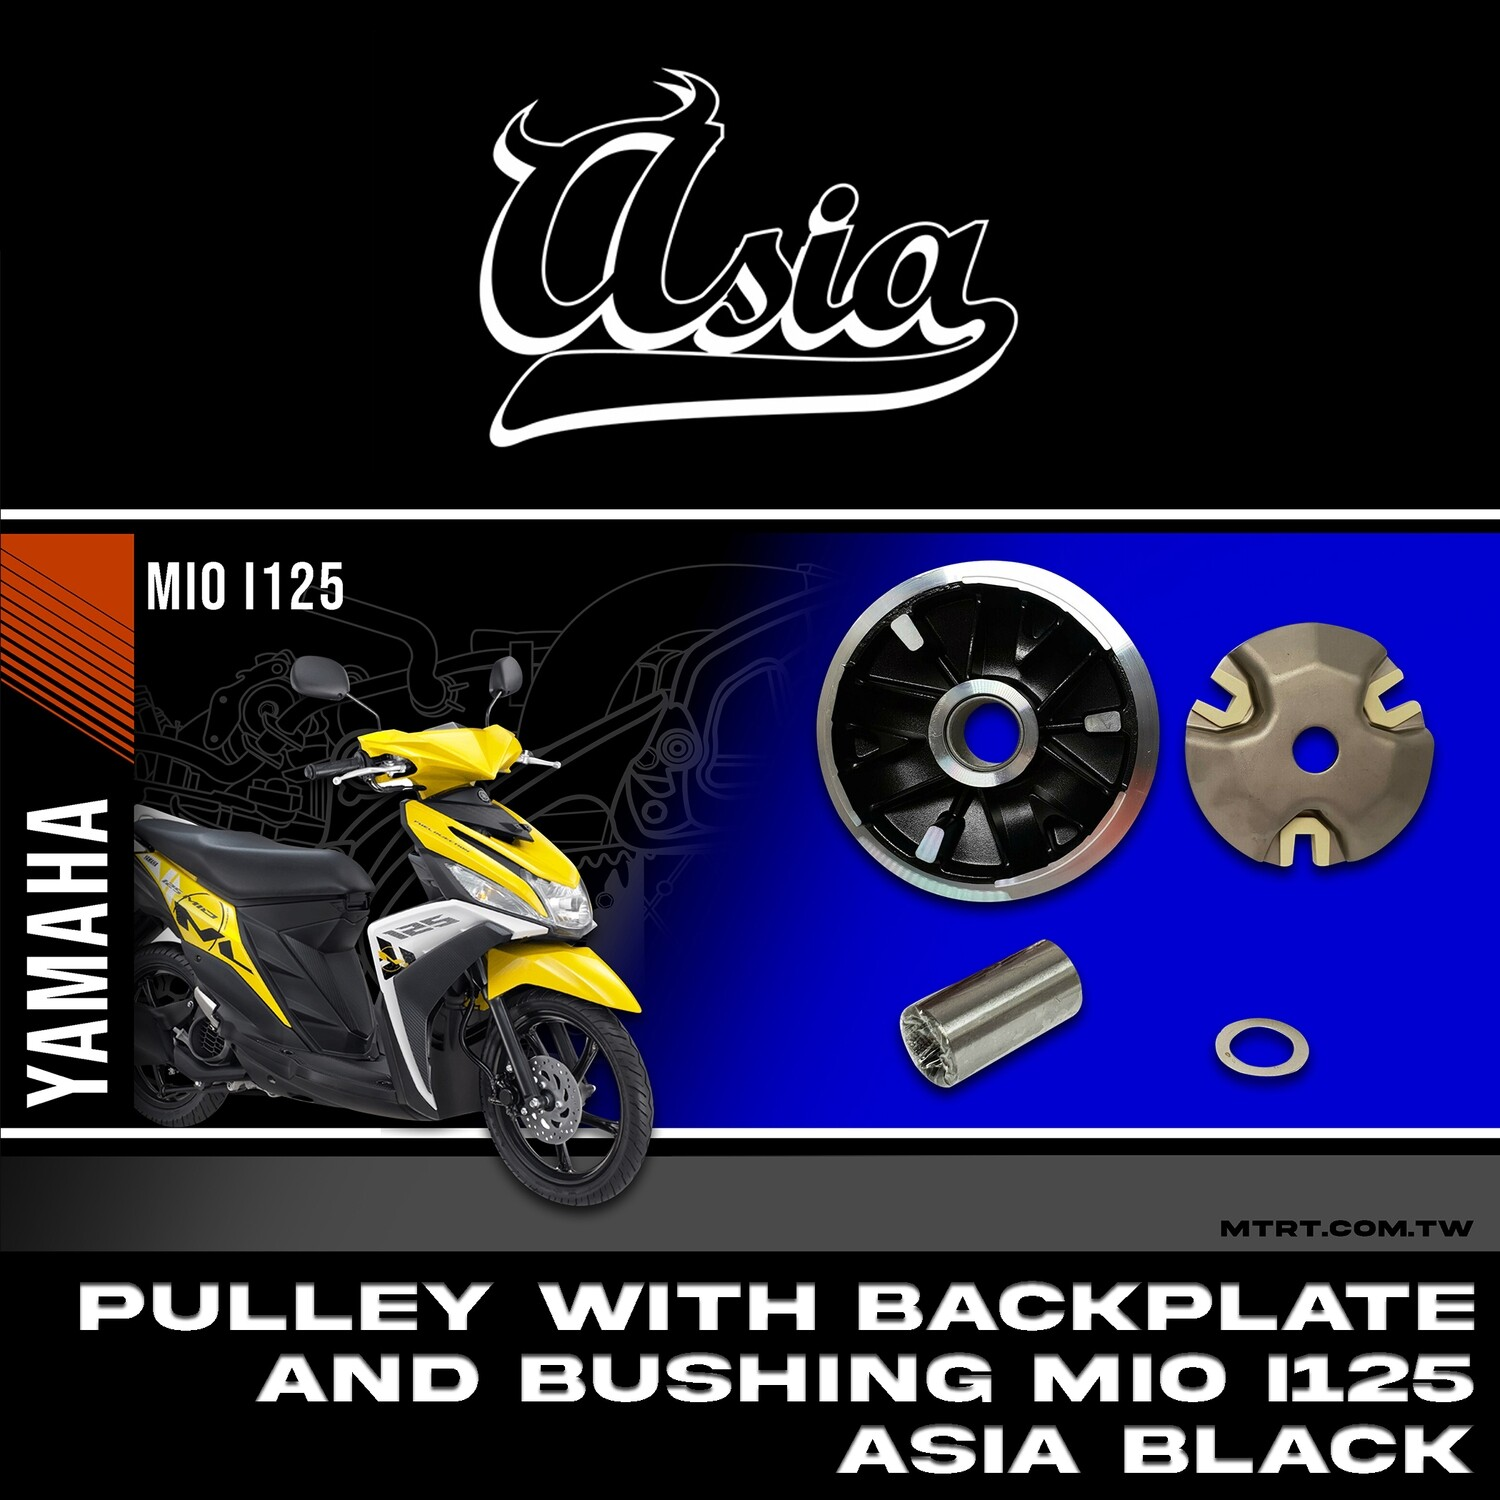 PULLEY with BACK PLATE AND bushing MIOi125 ASIA BLACK